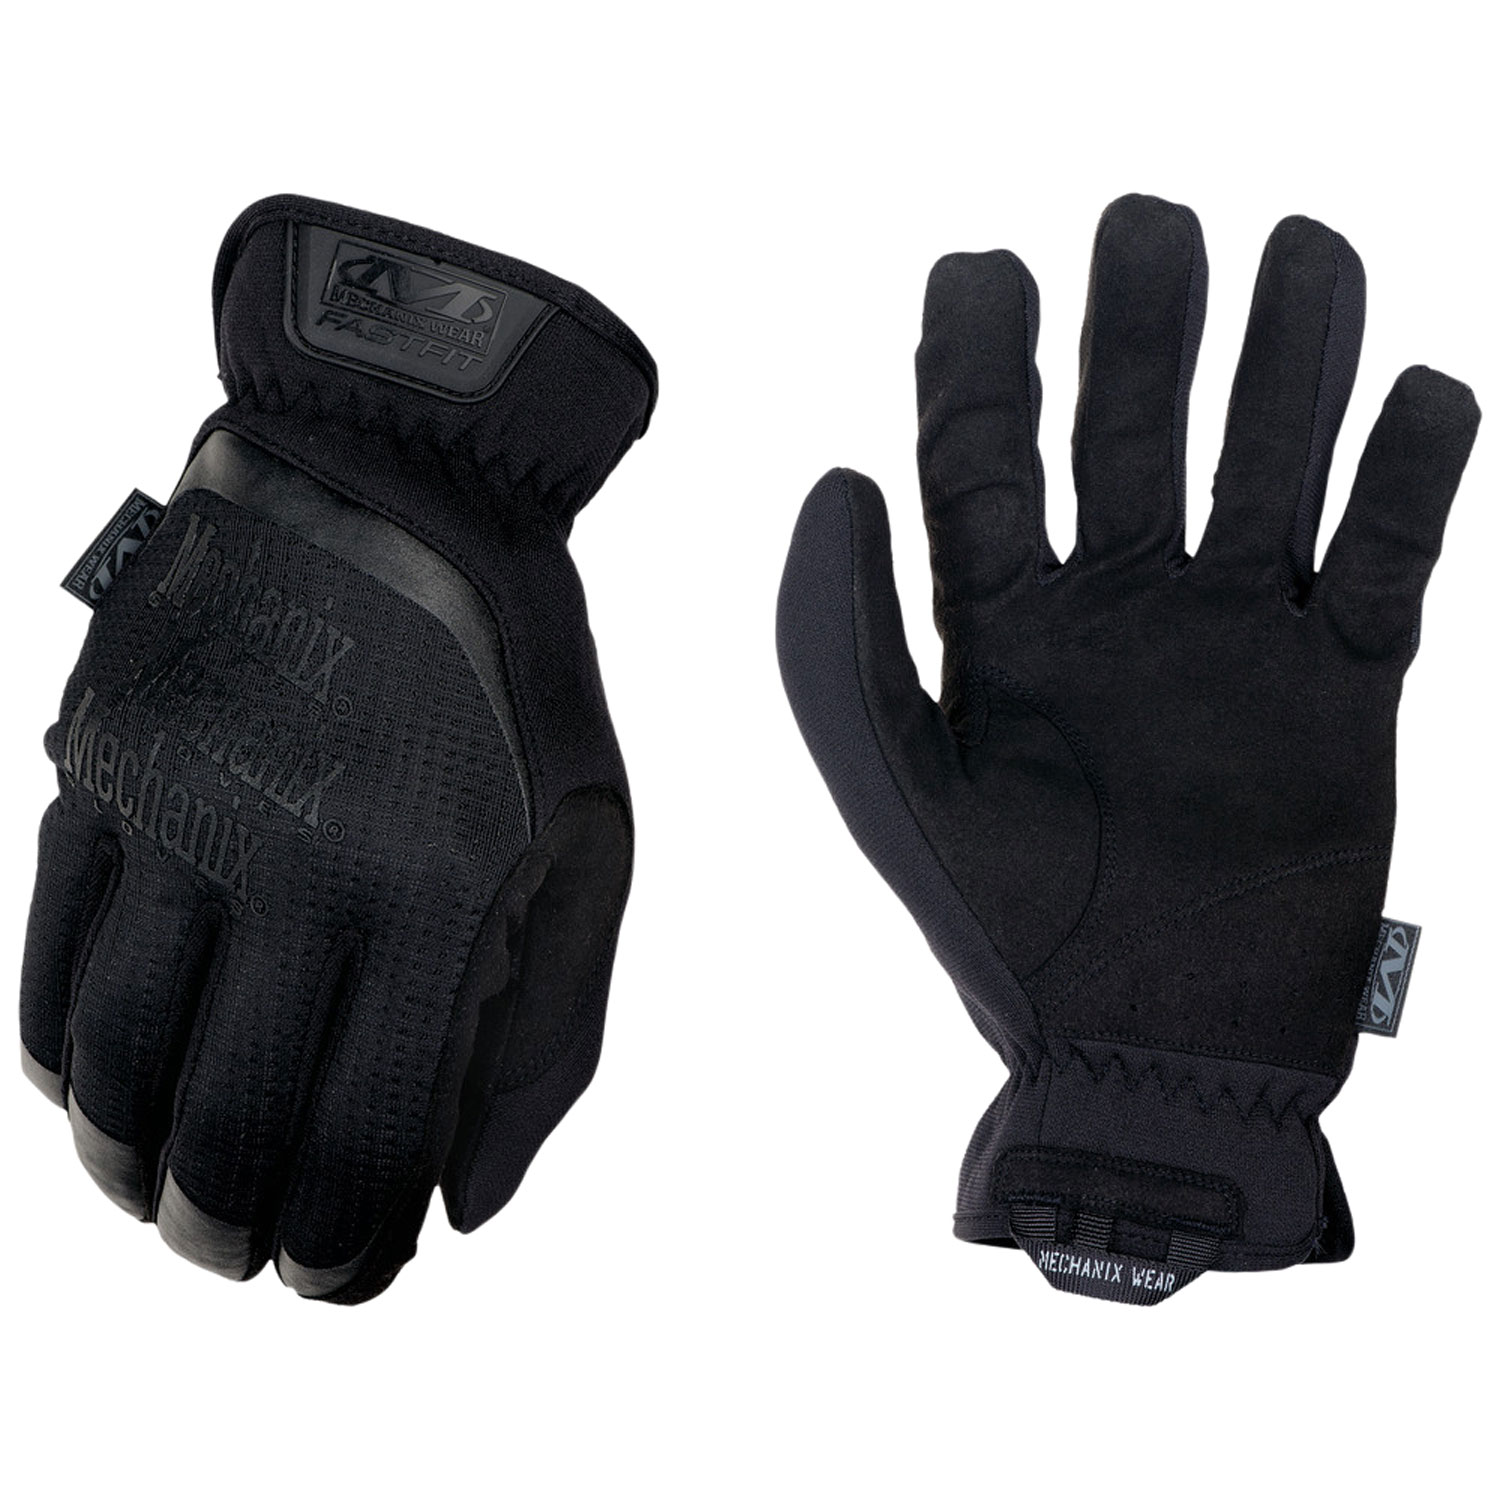 MECHANIX WEAR FFTAB-55-010 FastFit Covert Large Black Synthetic Leather Touchscreen